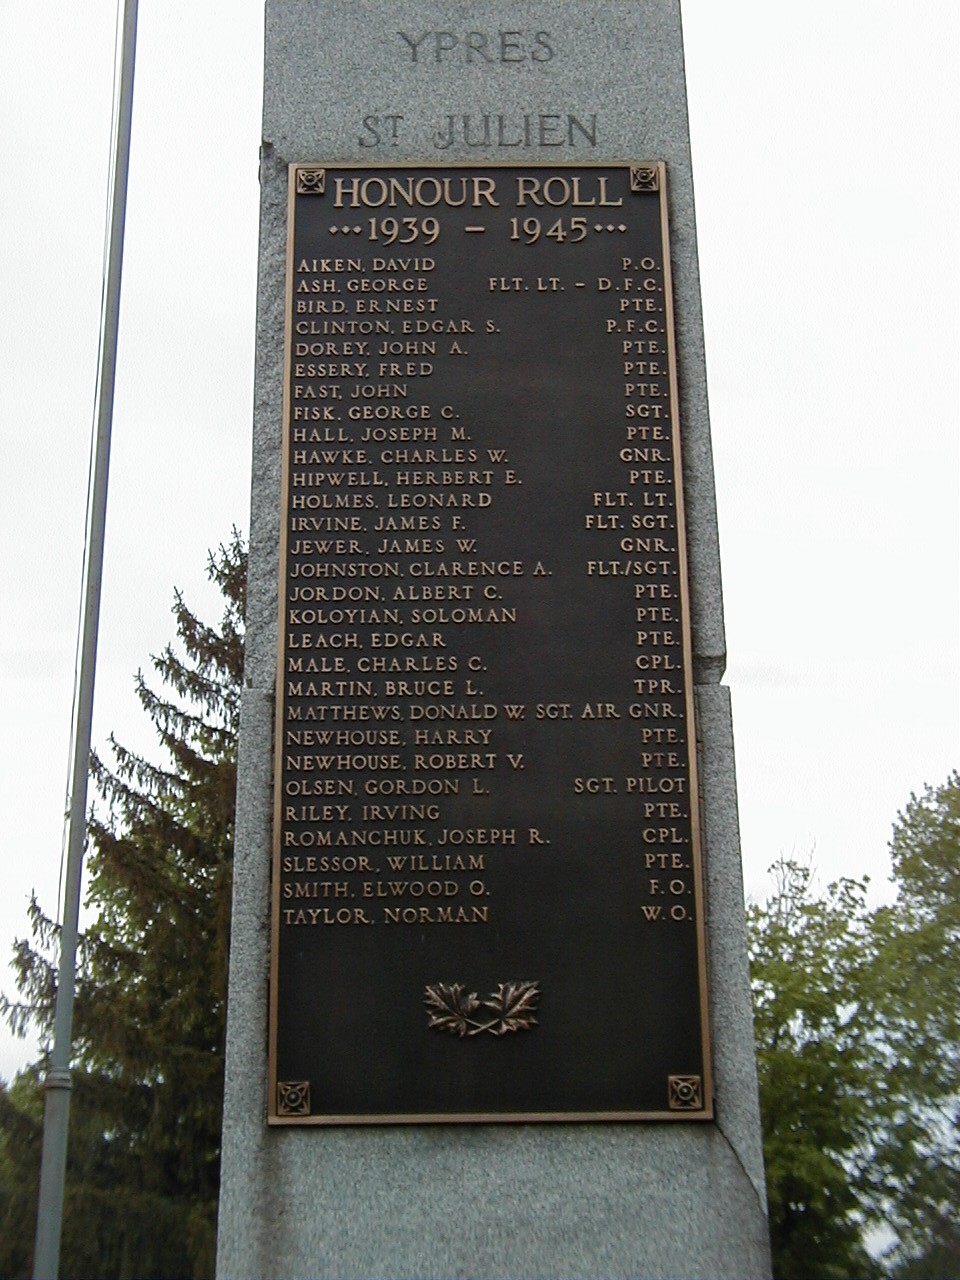 """Inscription– Pte Herbert Hipwell is commemorated on the Veterans Memorial at Victoria Lawn Cemetery, St. Catharines, ON.  Copyright © 2017 by T.L. Skelding. All rights reserved. The photograph(s) may be used solely for personal, informational, and internal purposes. The photograph(s) may not be modified or altered in any way OR posted on any other web-site for any purpose whatsoever. I request to be notified where the image is being used and that the tag """"Courtesy The Mounted Dragoon. Copyrighted Image. Used with Permission."""" is added to every image."""